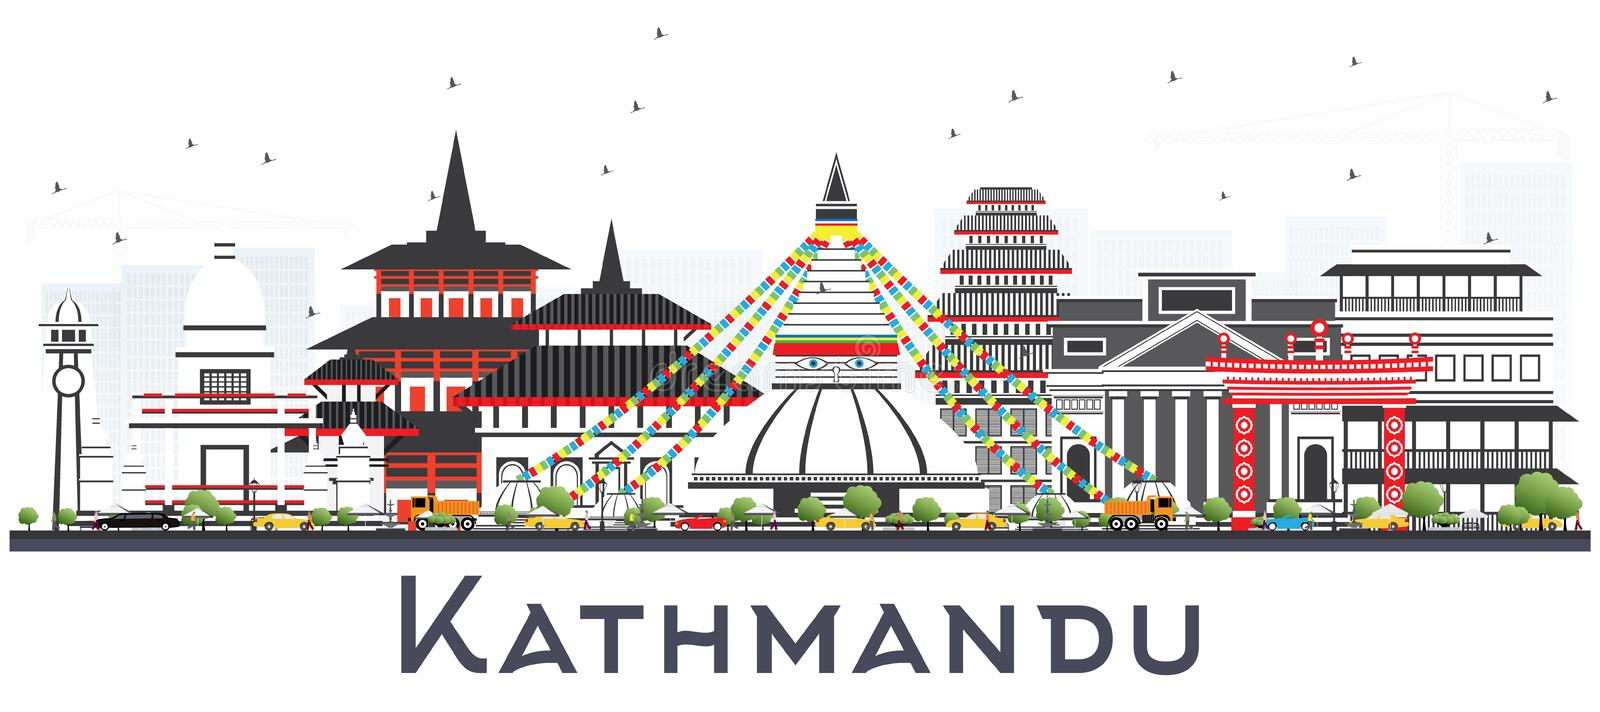 Kathmandu Nepal Skyline with Gray Buildings Isolated on White. Vector Illustration. Business Travel and Tourism Concept with Historic Architecture. Kathmandu stock illustration